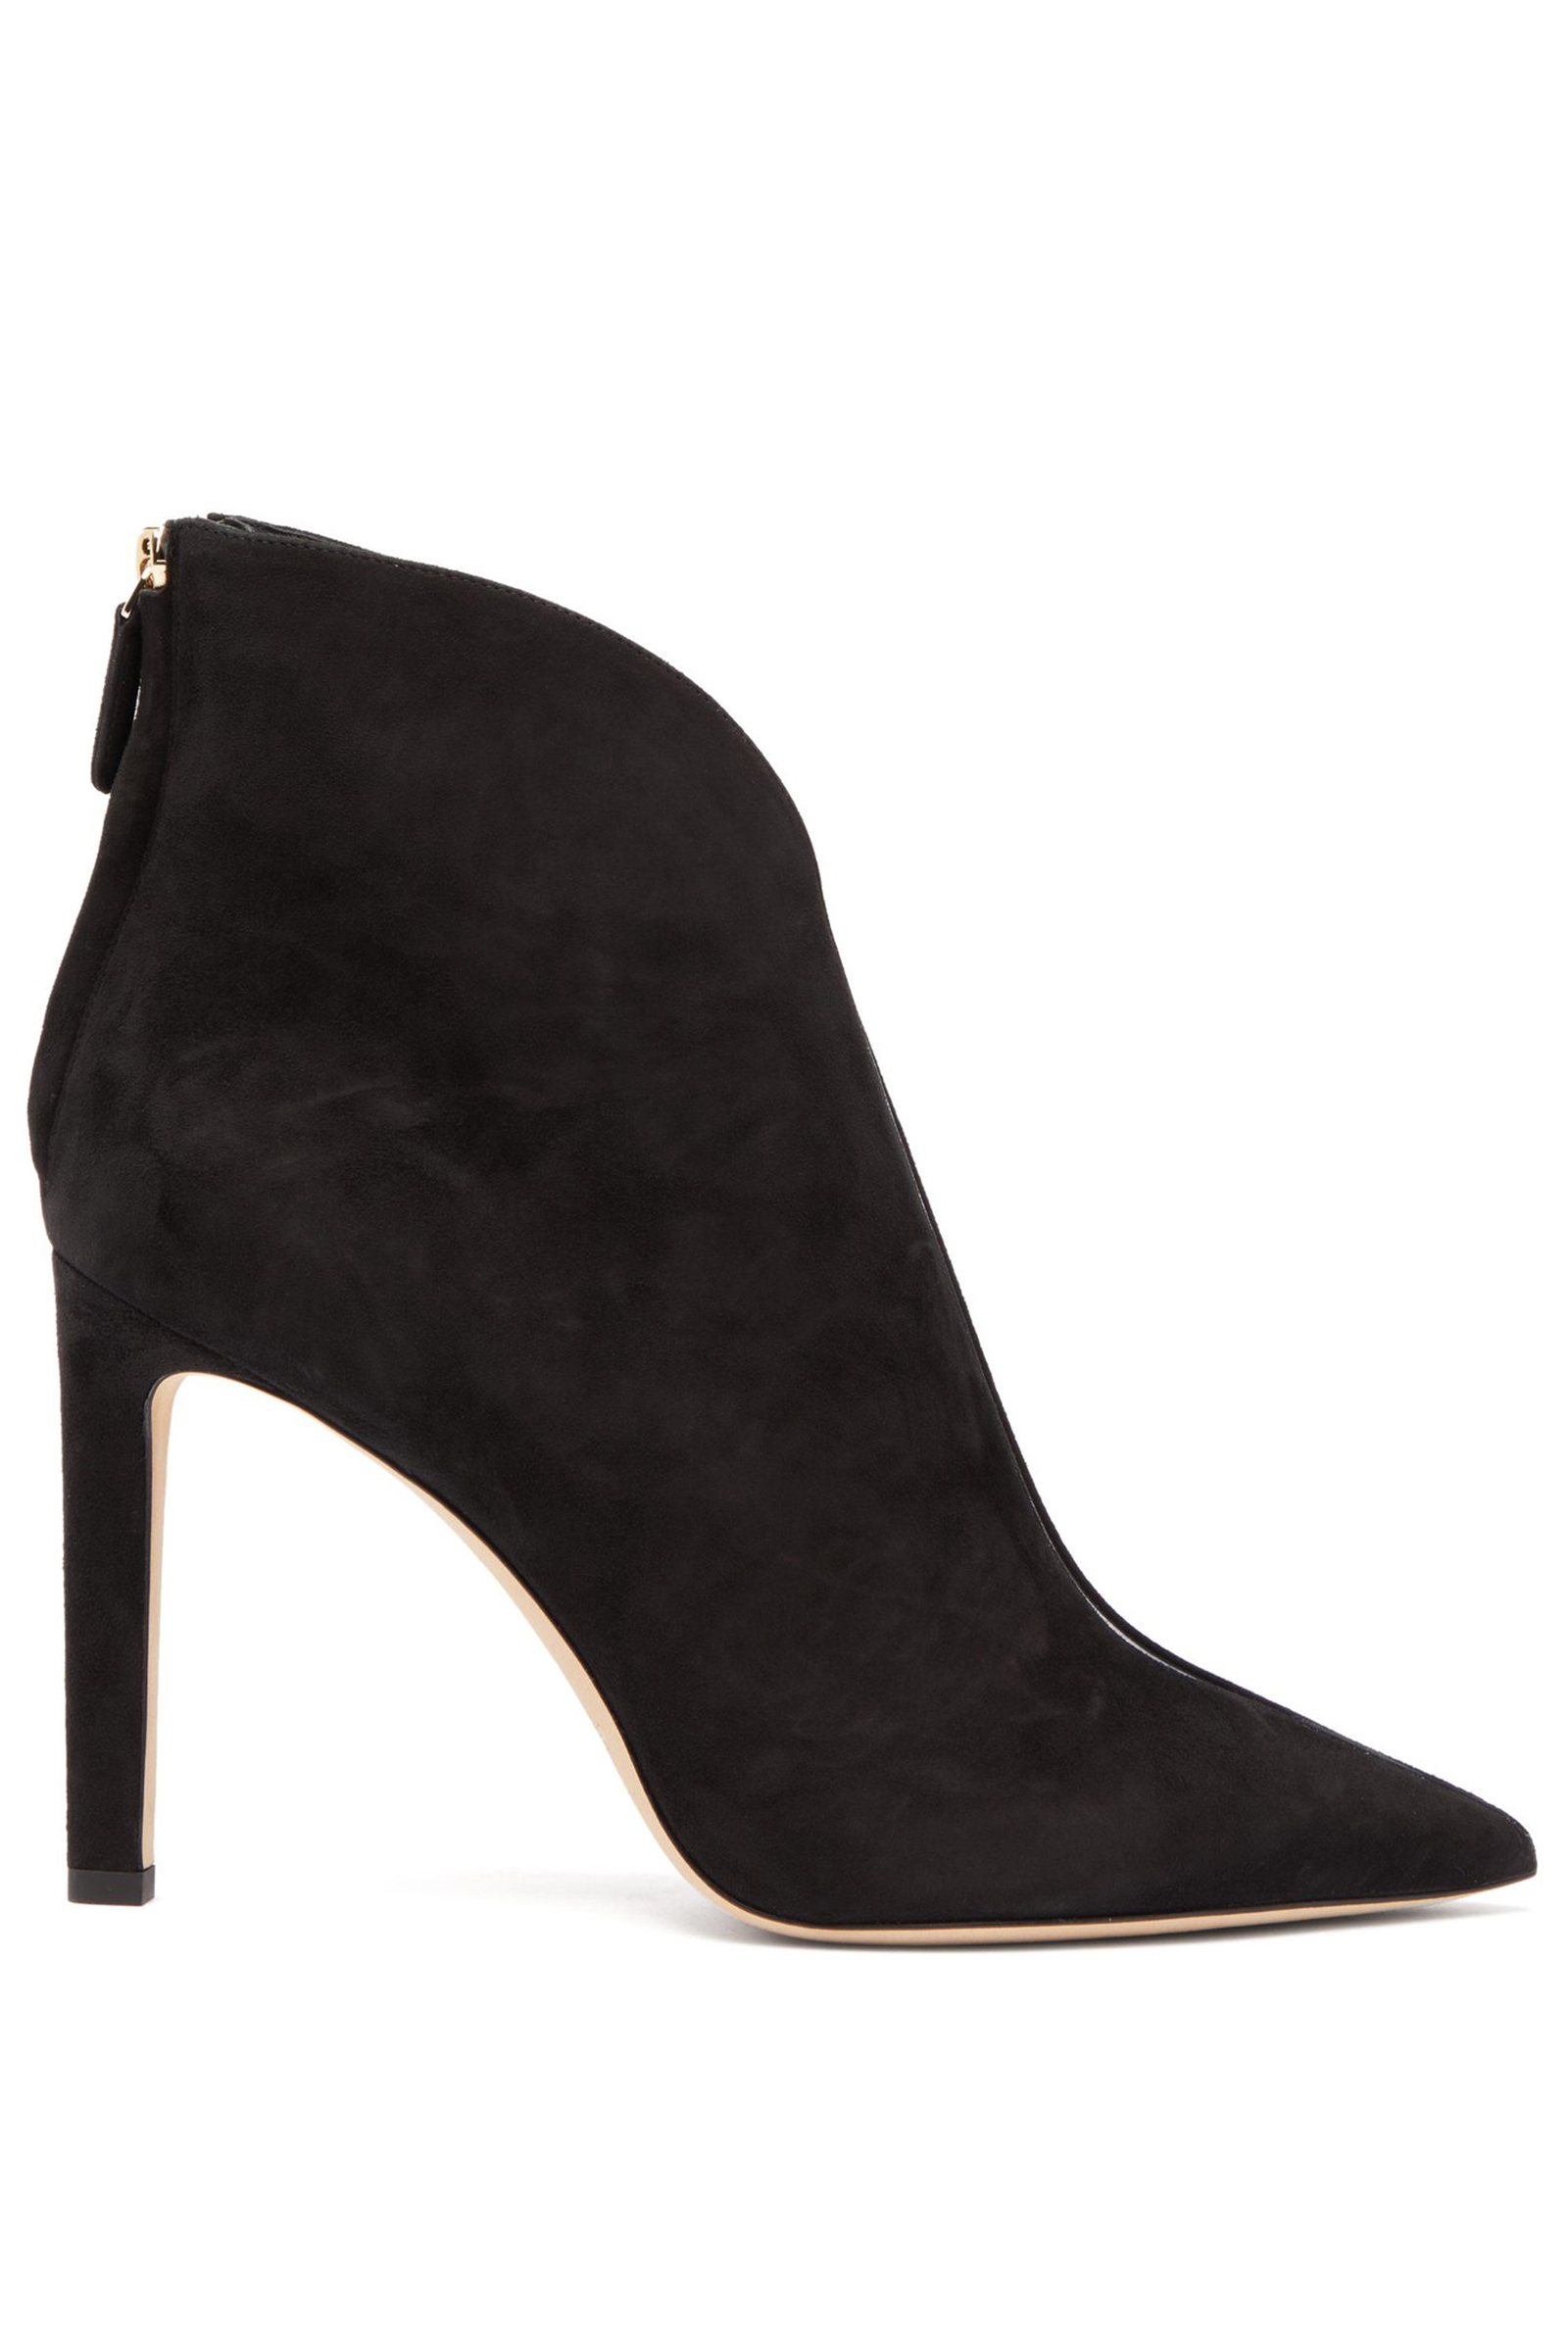 5c0ef95bf66 Buy Jimmy Choo Bowie 100 Suede Ankle Boots Online